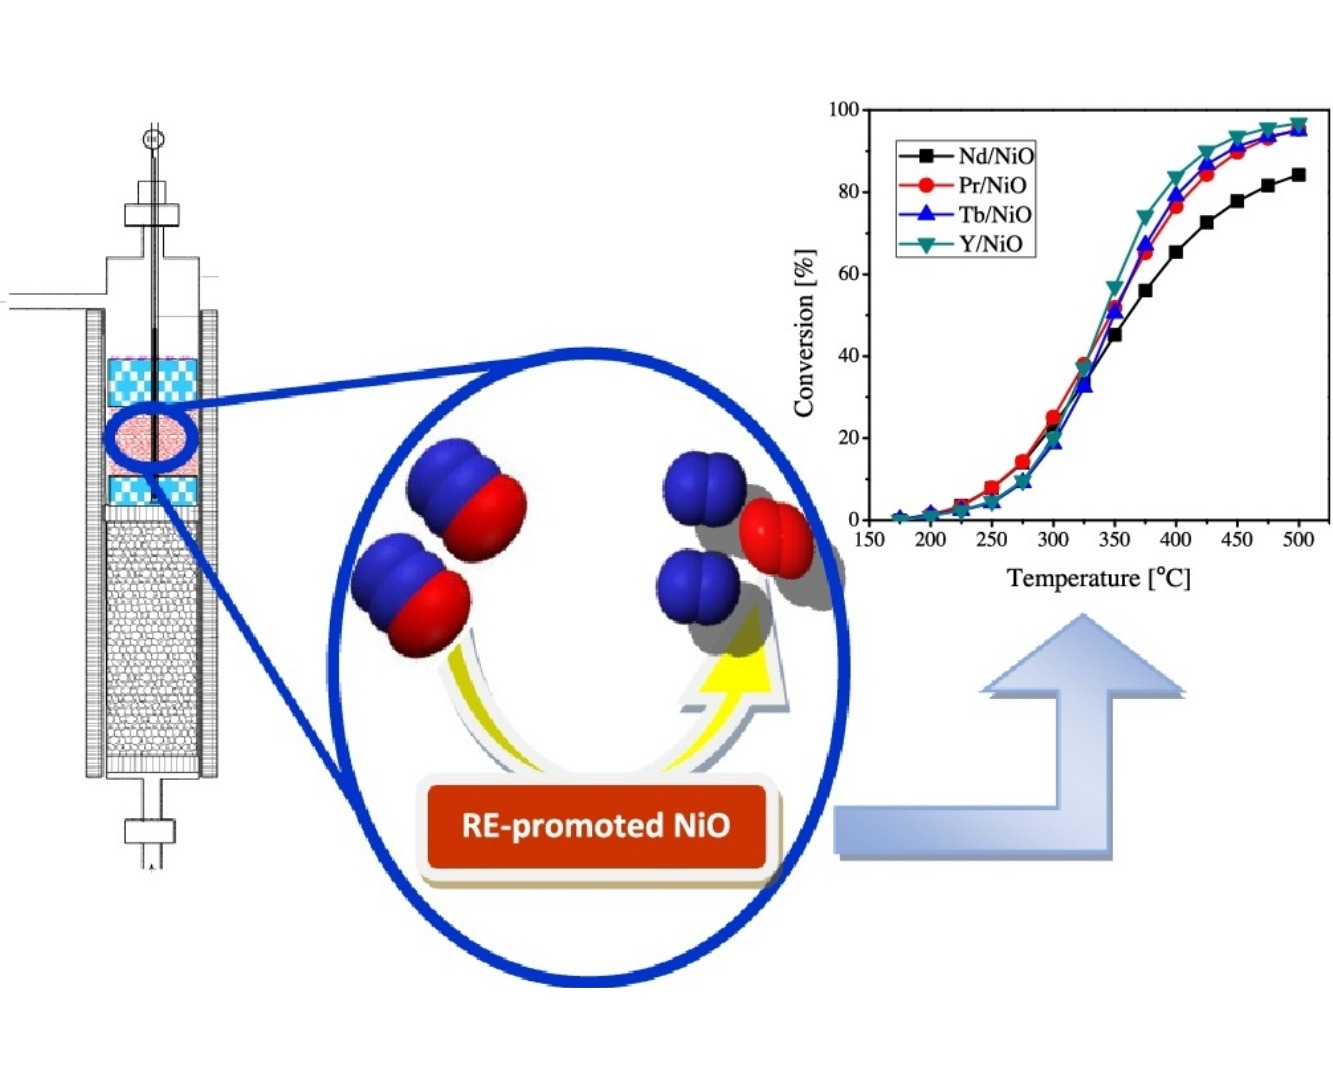 Effects of Nd-, Pr-, Tb- and Y-doping on the structural, textural, electrical and N2O decomposition activity of mesoporous NiO nanoparticles